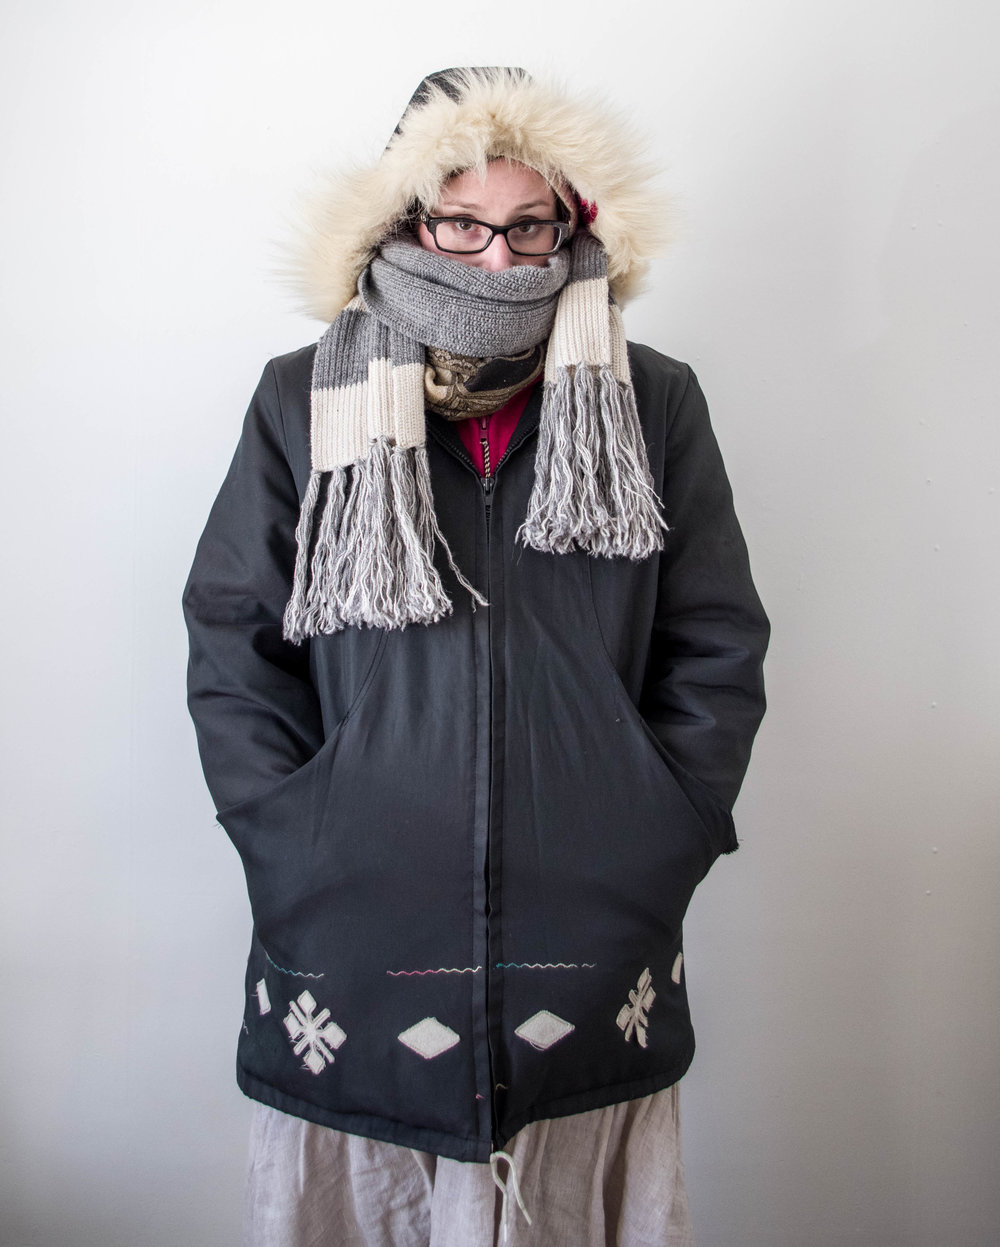 last winter's aesthetic, which will probably be the same as this winter's aesthetic - skirts over tights with thick socks on the bottom, three or four torso layers hiding underneath a two-layer parka that my mum bought several decades ago for the north, hands wearing handshoes and big mitts buried in pockets, hat covered by a double-layer hood with fur trim to block some of the prairie wind, pashmina wrapped around the neck and a scarf snagged from bryce covering most of my face. guaranteed my bones will still be cold when we get to this point.